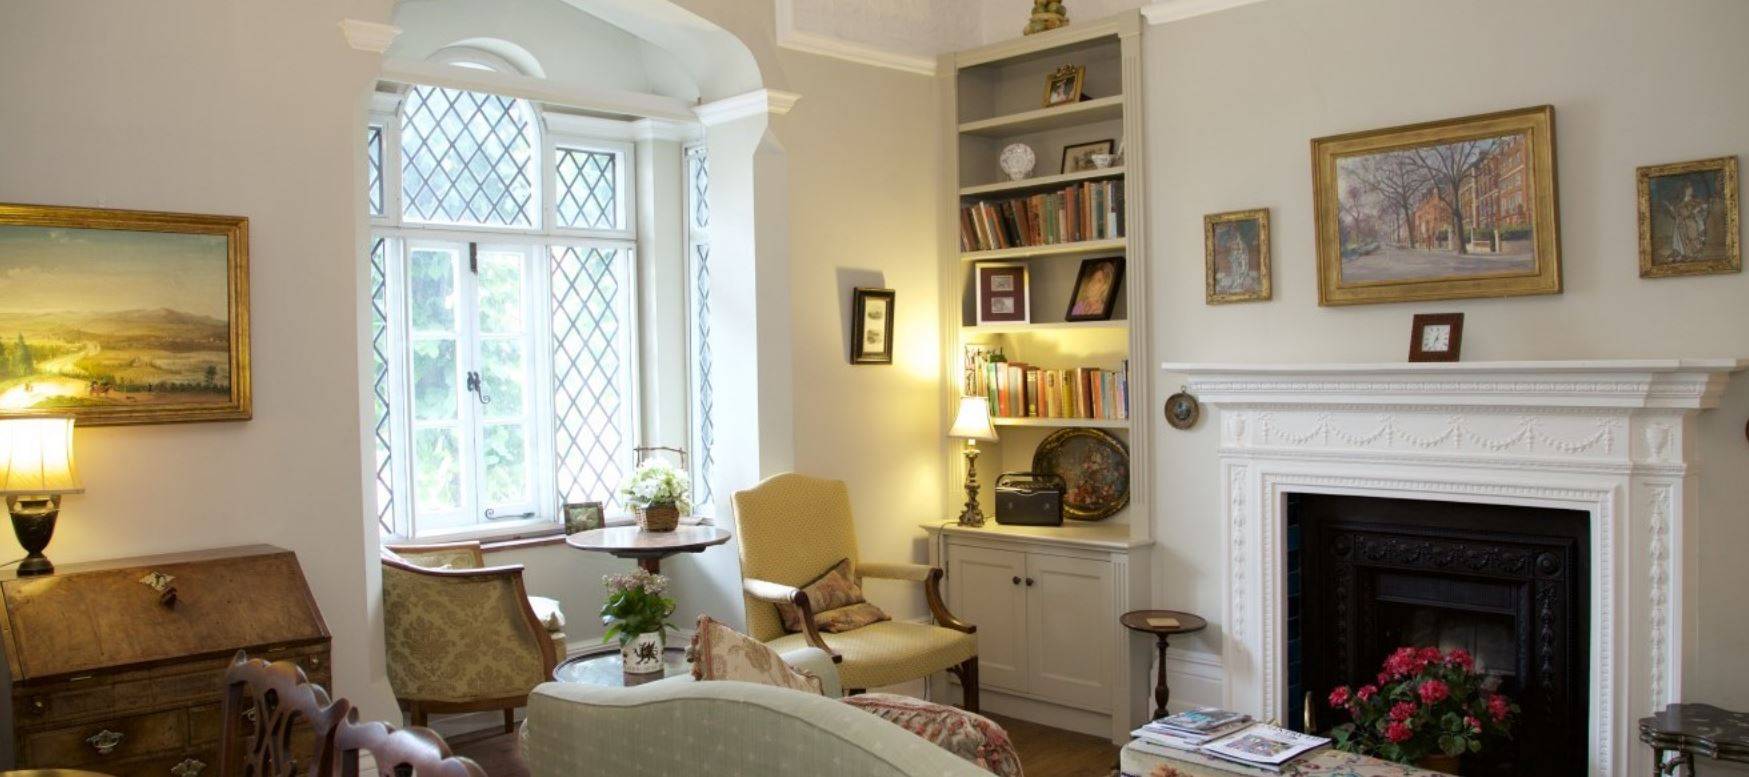 Cute 1 Bedroom Chelsea Flat